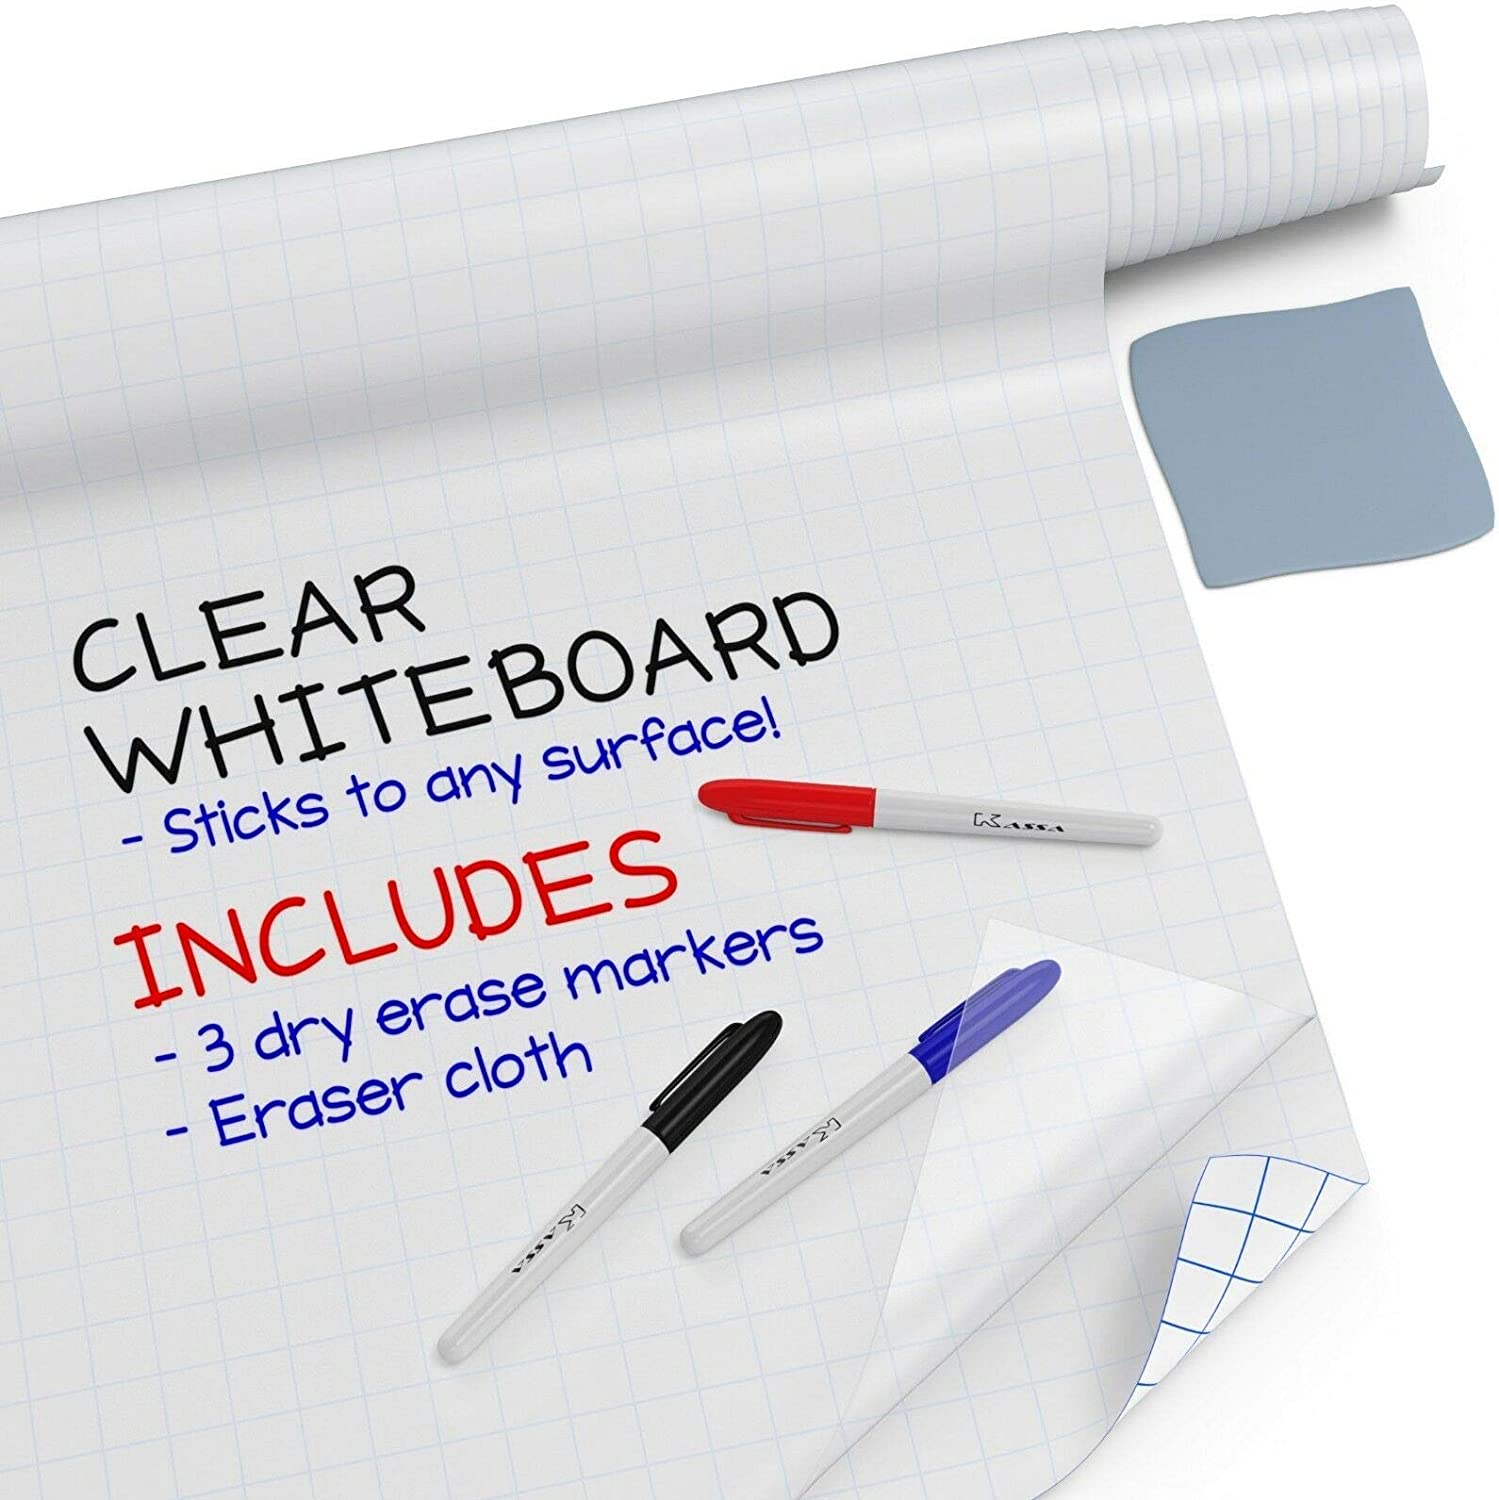 "Kassa Clear Dry Erase Board Sticker - 17.3"" x 78"" (6.5 Feet) - 3 Dry-Erase Markers Included - Transparent Adhesive White Board Film for Refrigerator, Desk, Office - Glass Dry Erase Board Alternative"